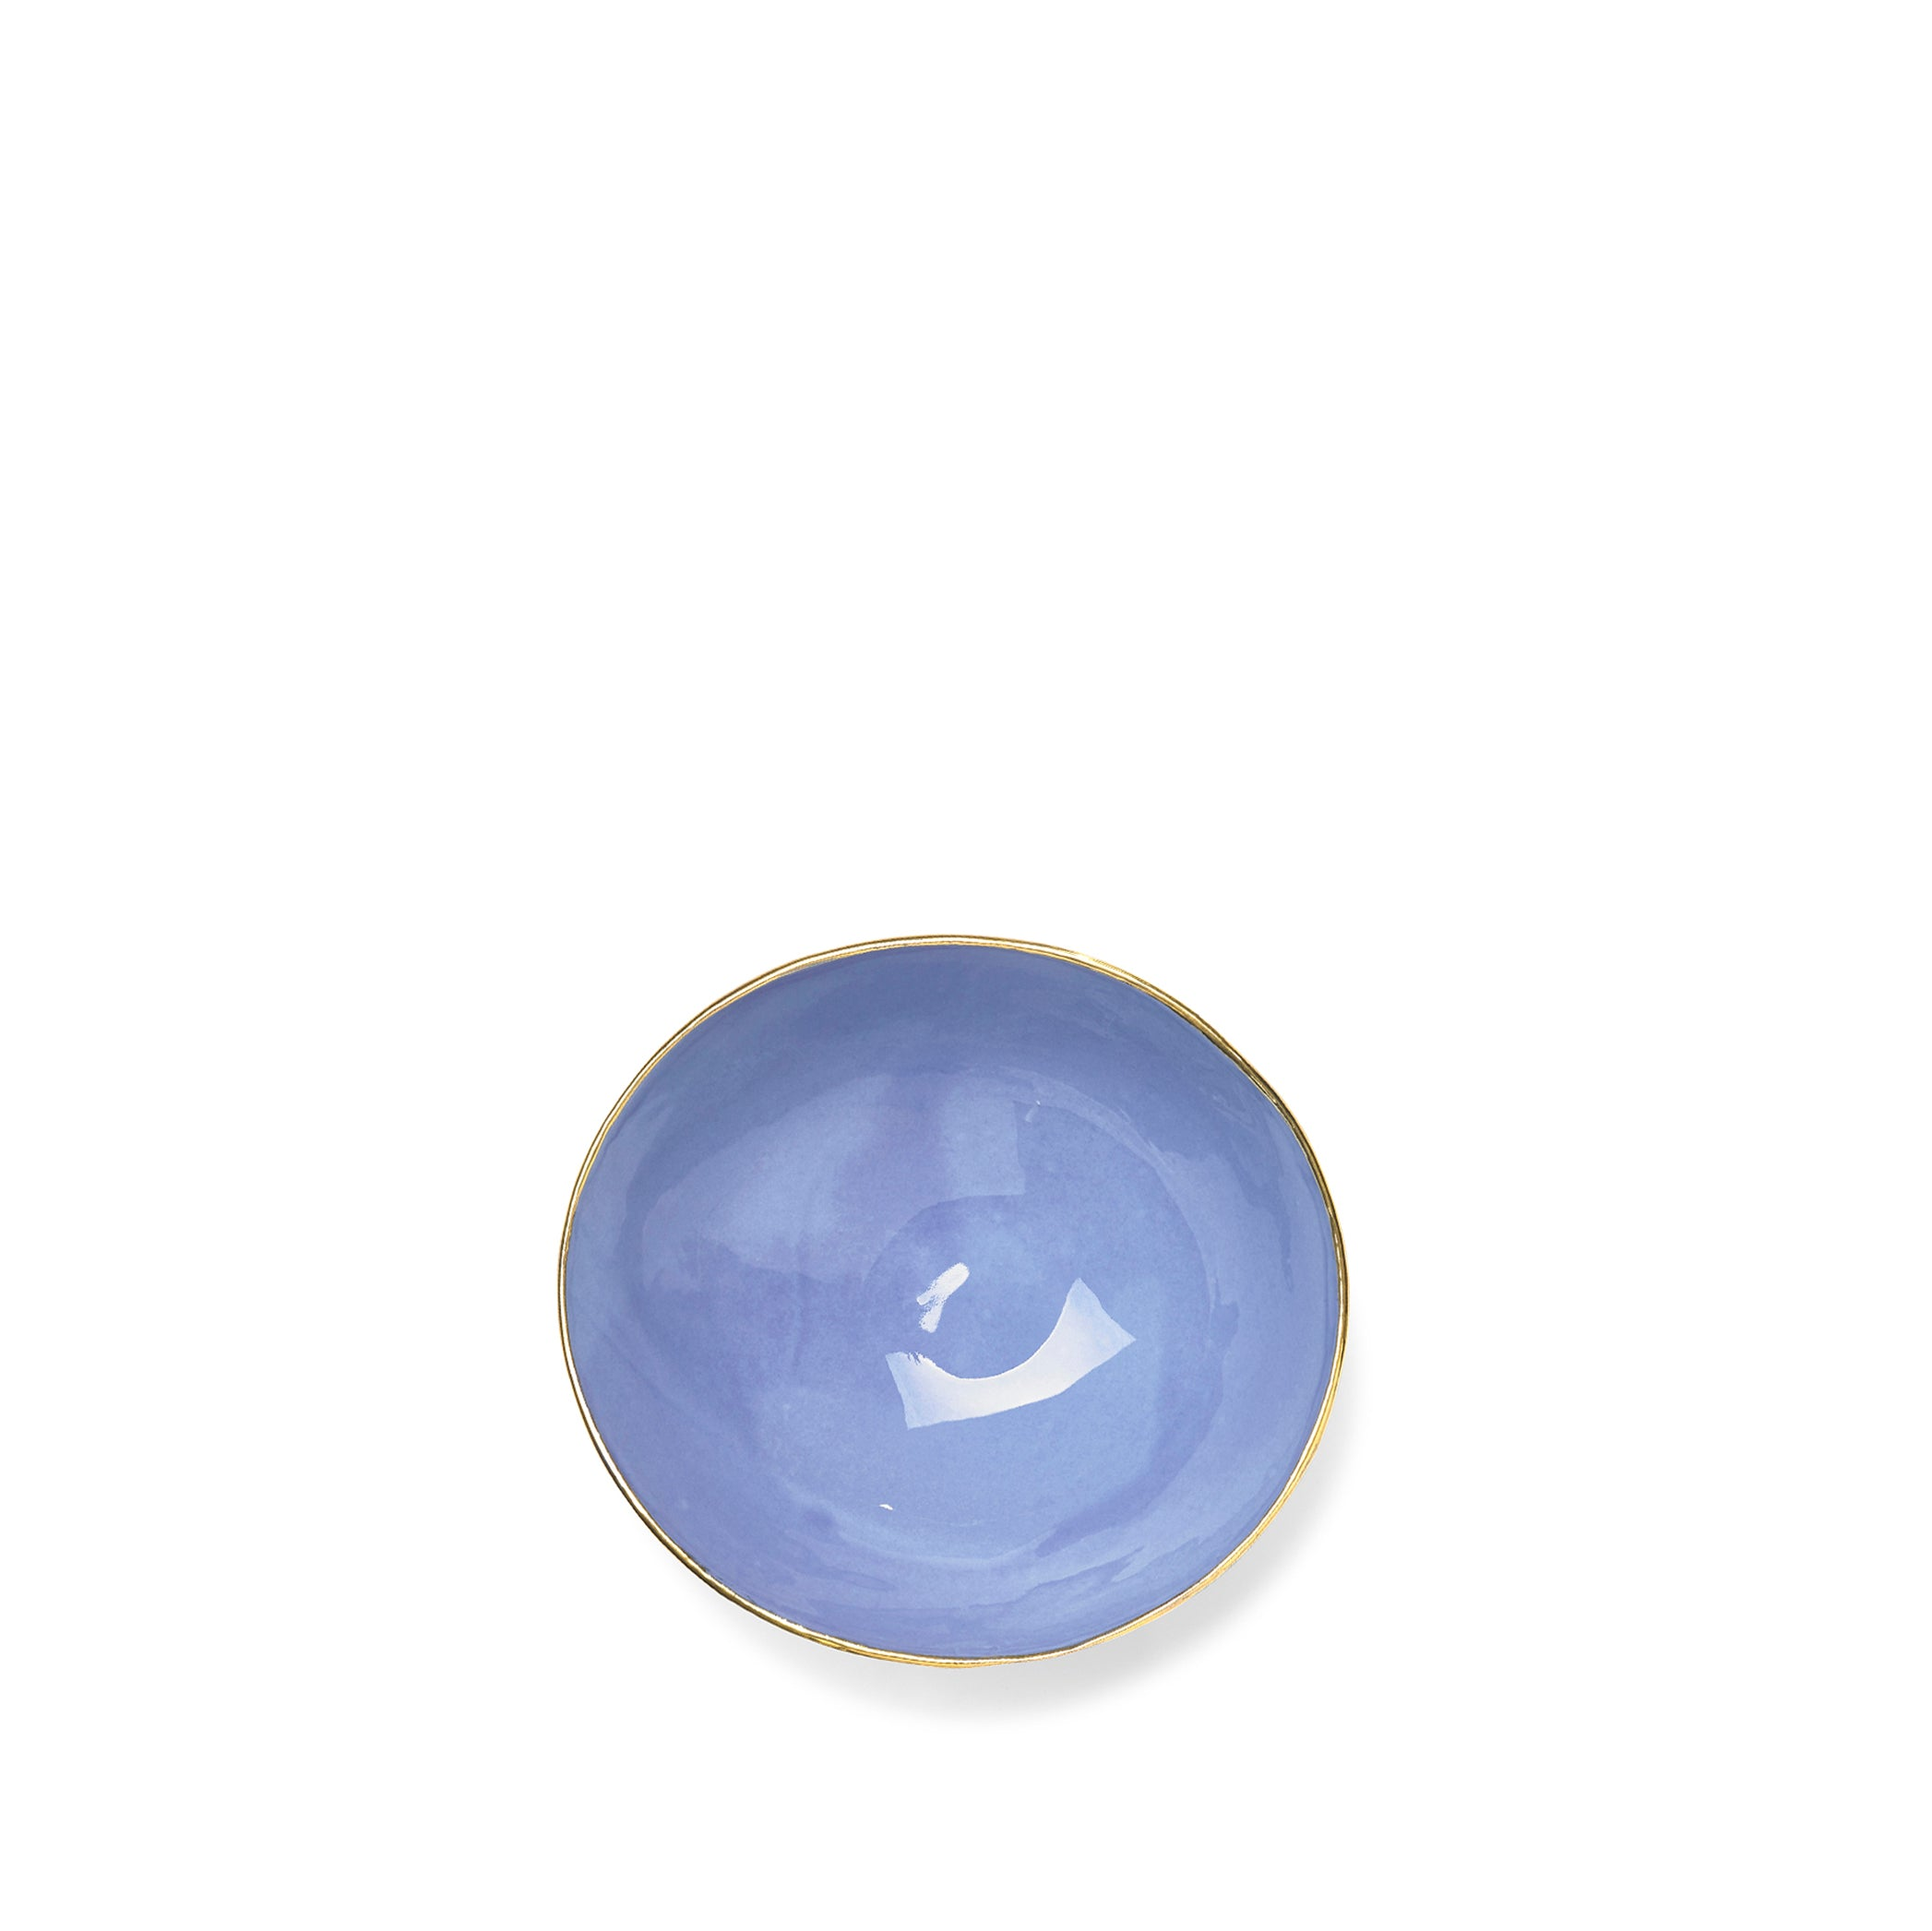 Full Painted Blue Ceramic Bowl with Gold Rim, 16cm